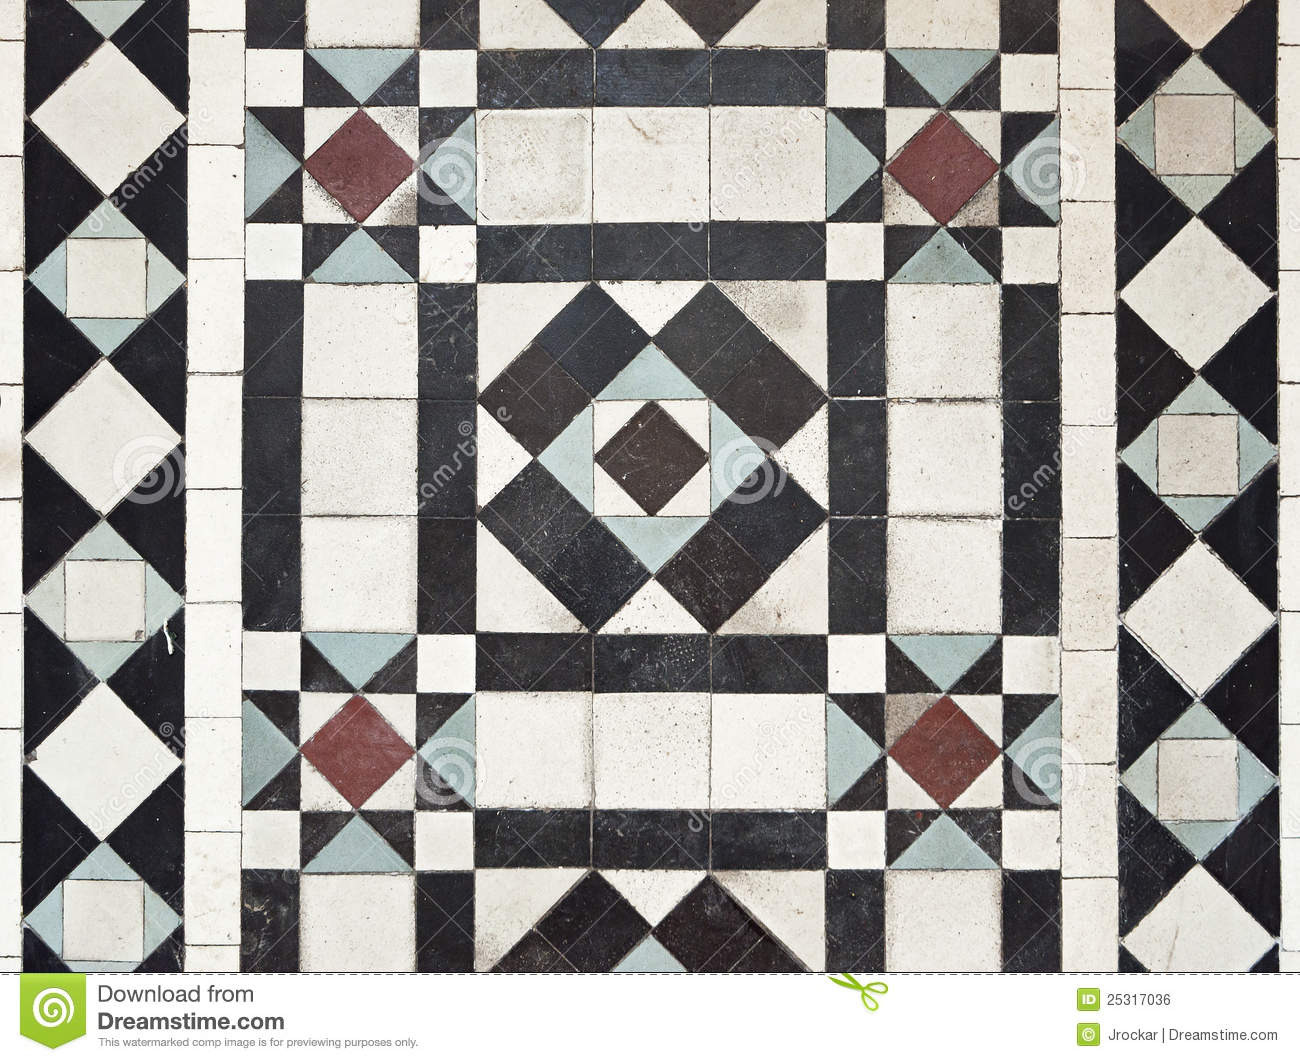 Victorian Style Floor Tile Pattern Stock Image - Image of corridor ...